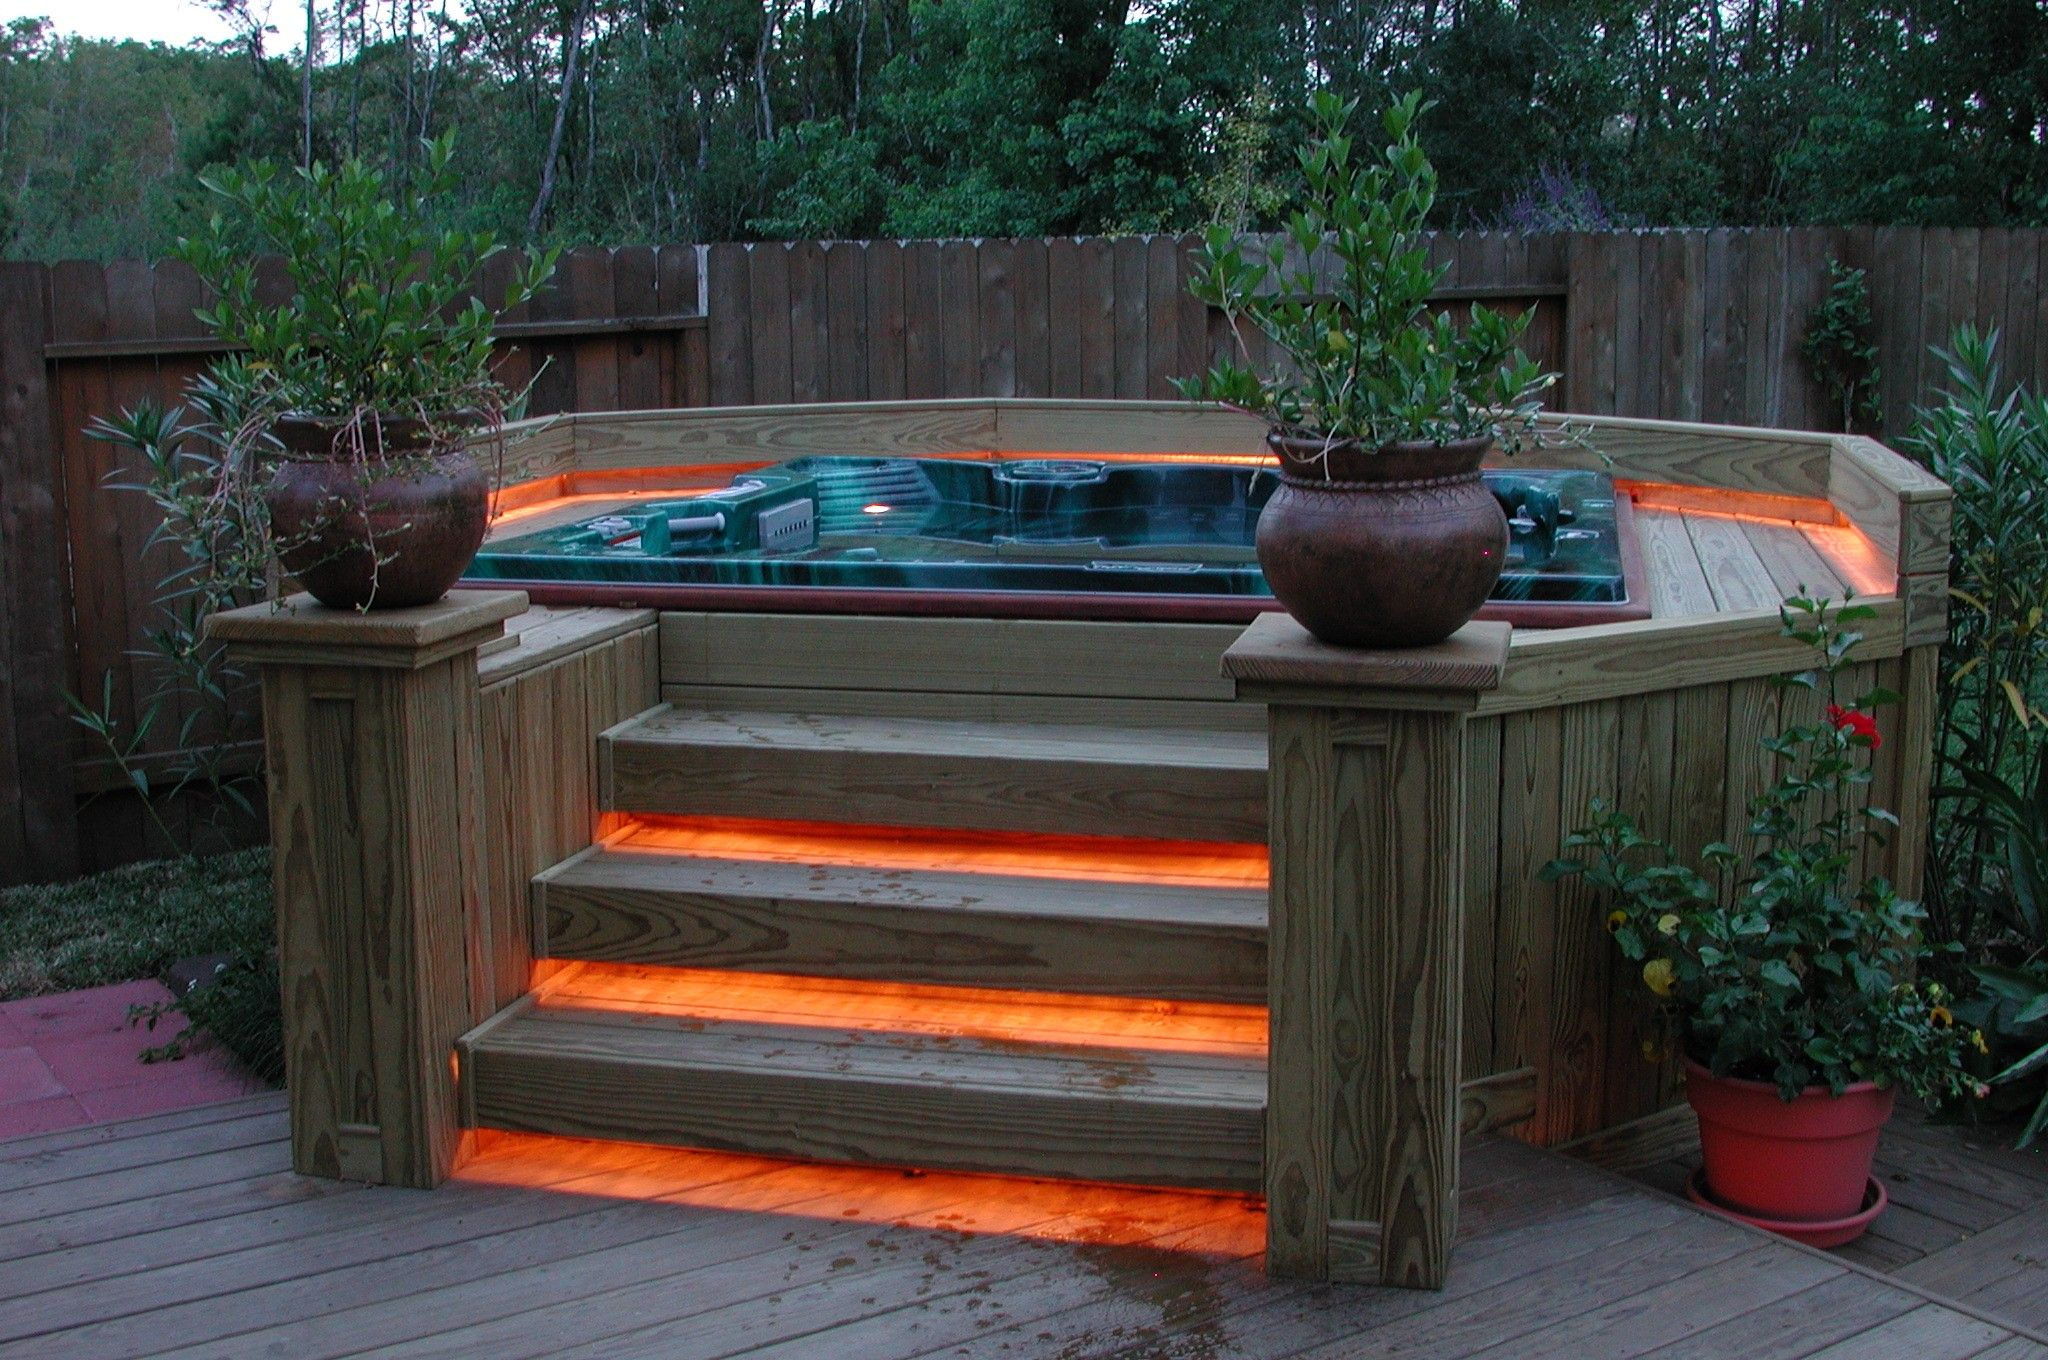 Wooden Hot Tub Deck Idea Instead Of In Ground Maybe Not The Orange Lights But A Diffe Color